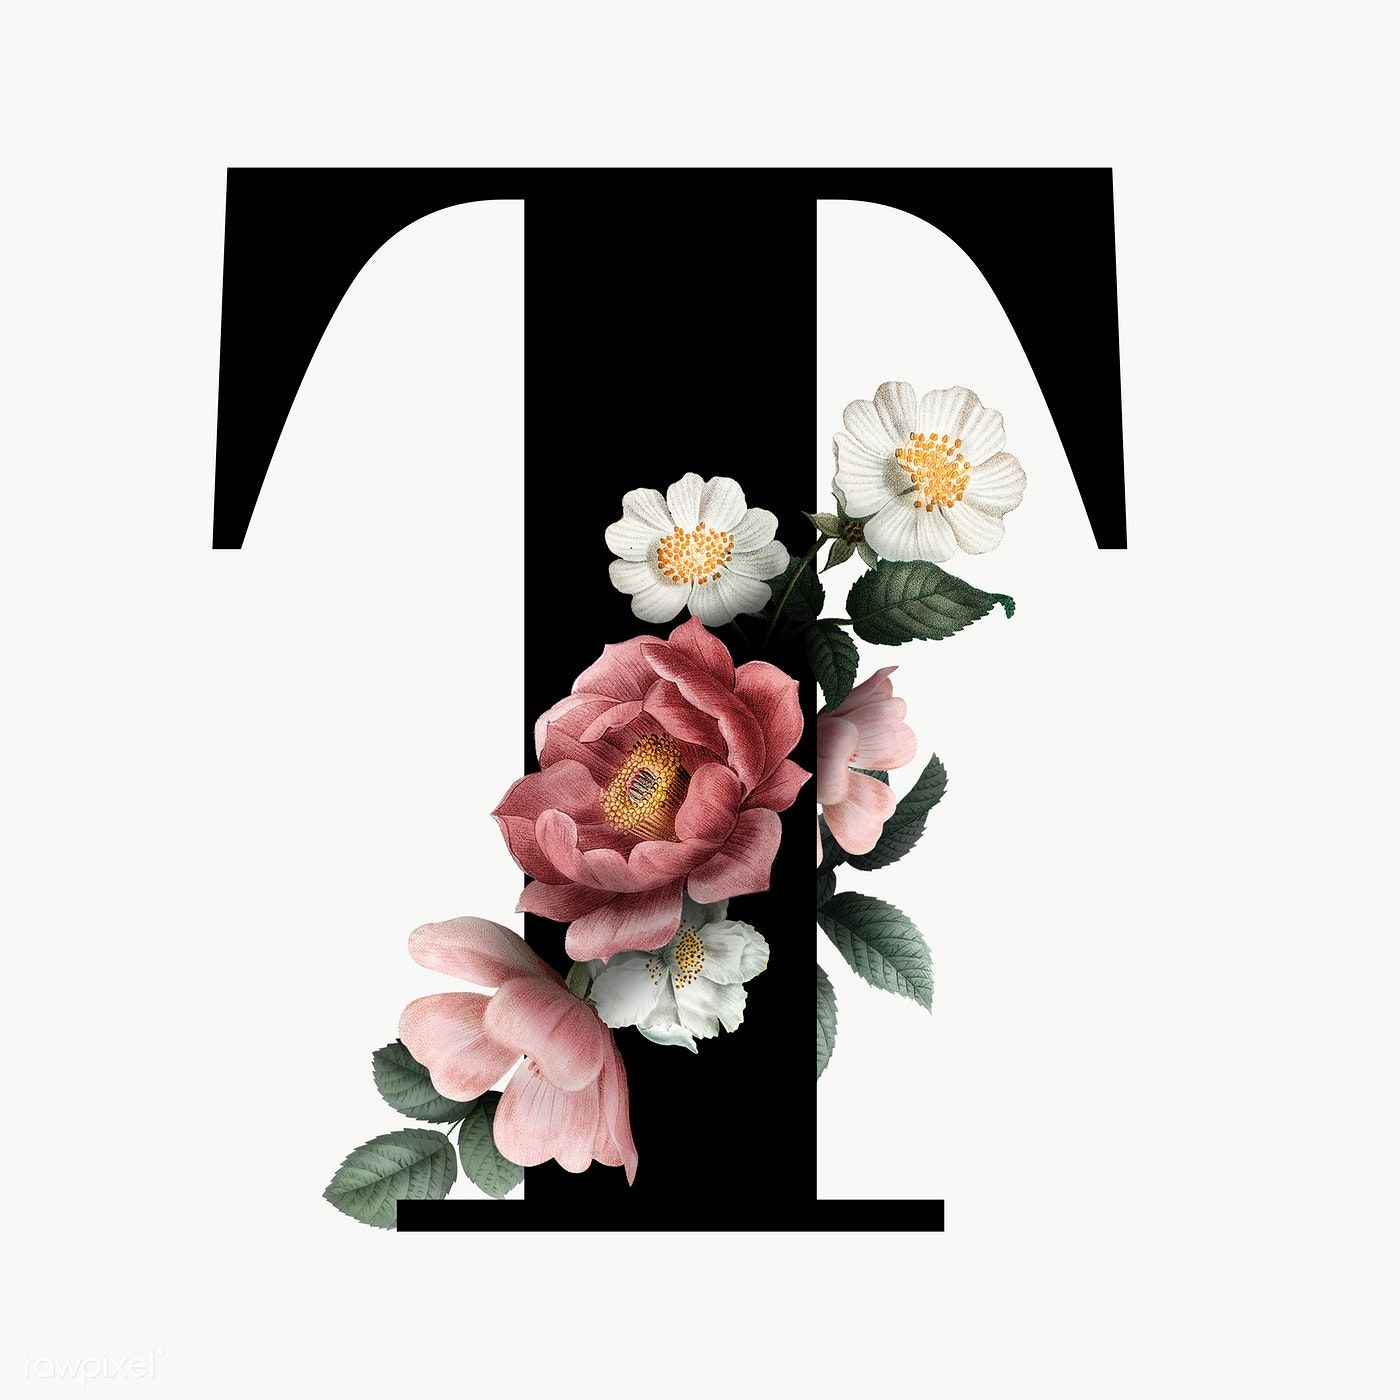 Classic And Elegant Floral Alphabet Font Letter T Transparent Png Free Image By Rawpixel Com Fonts Alphabet Lettering Fonts Lettering Alphabet Fonts